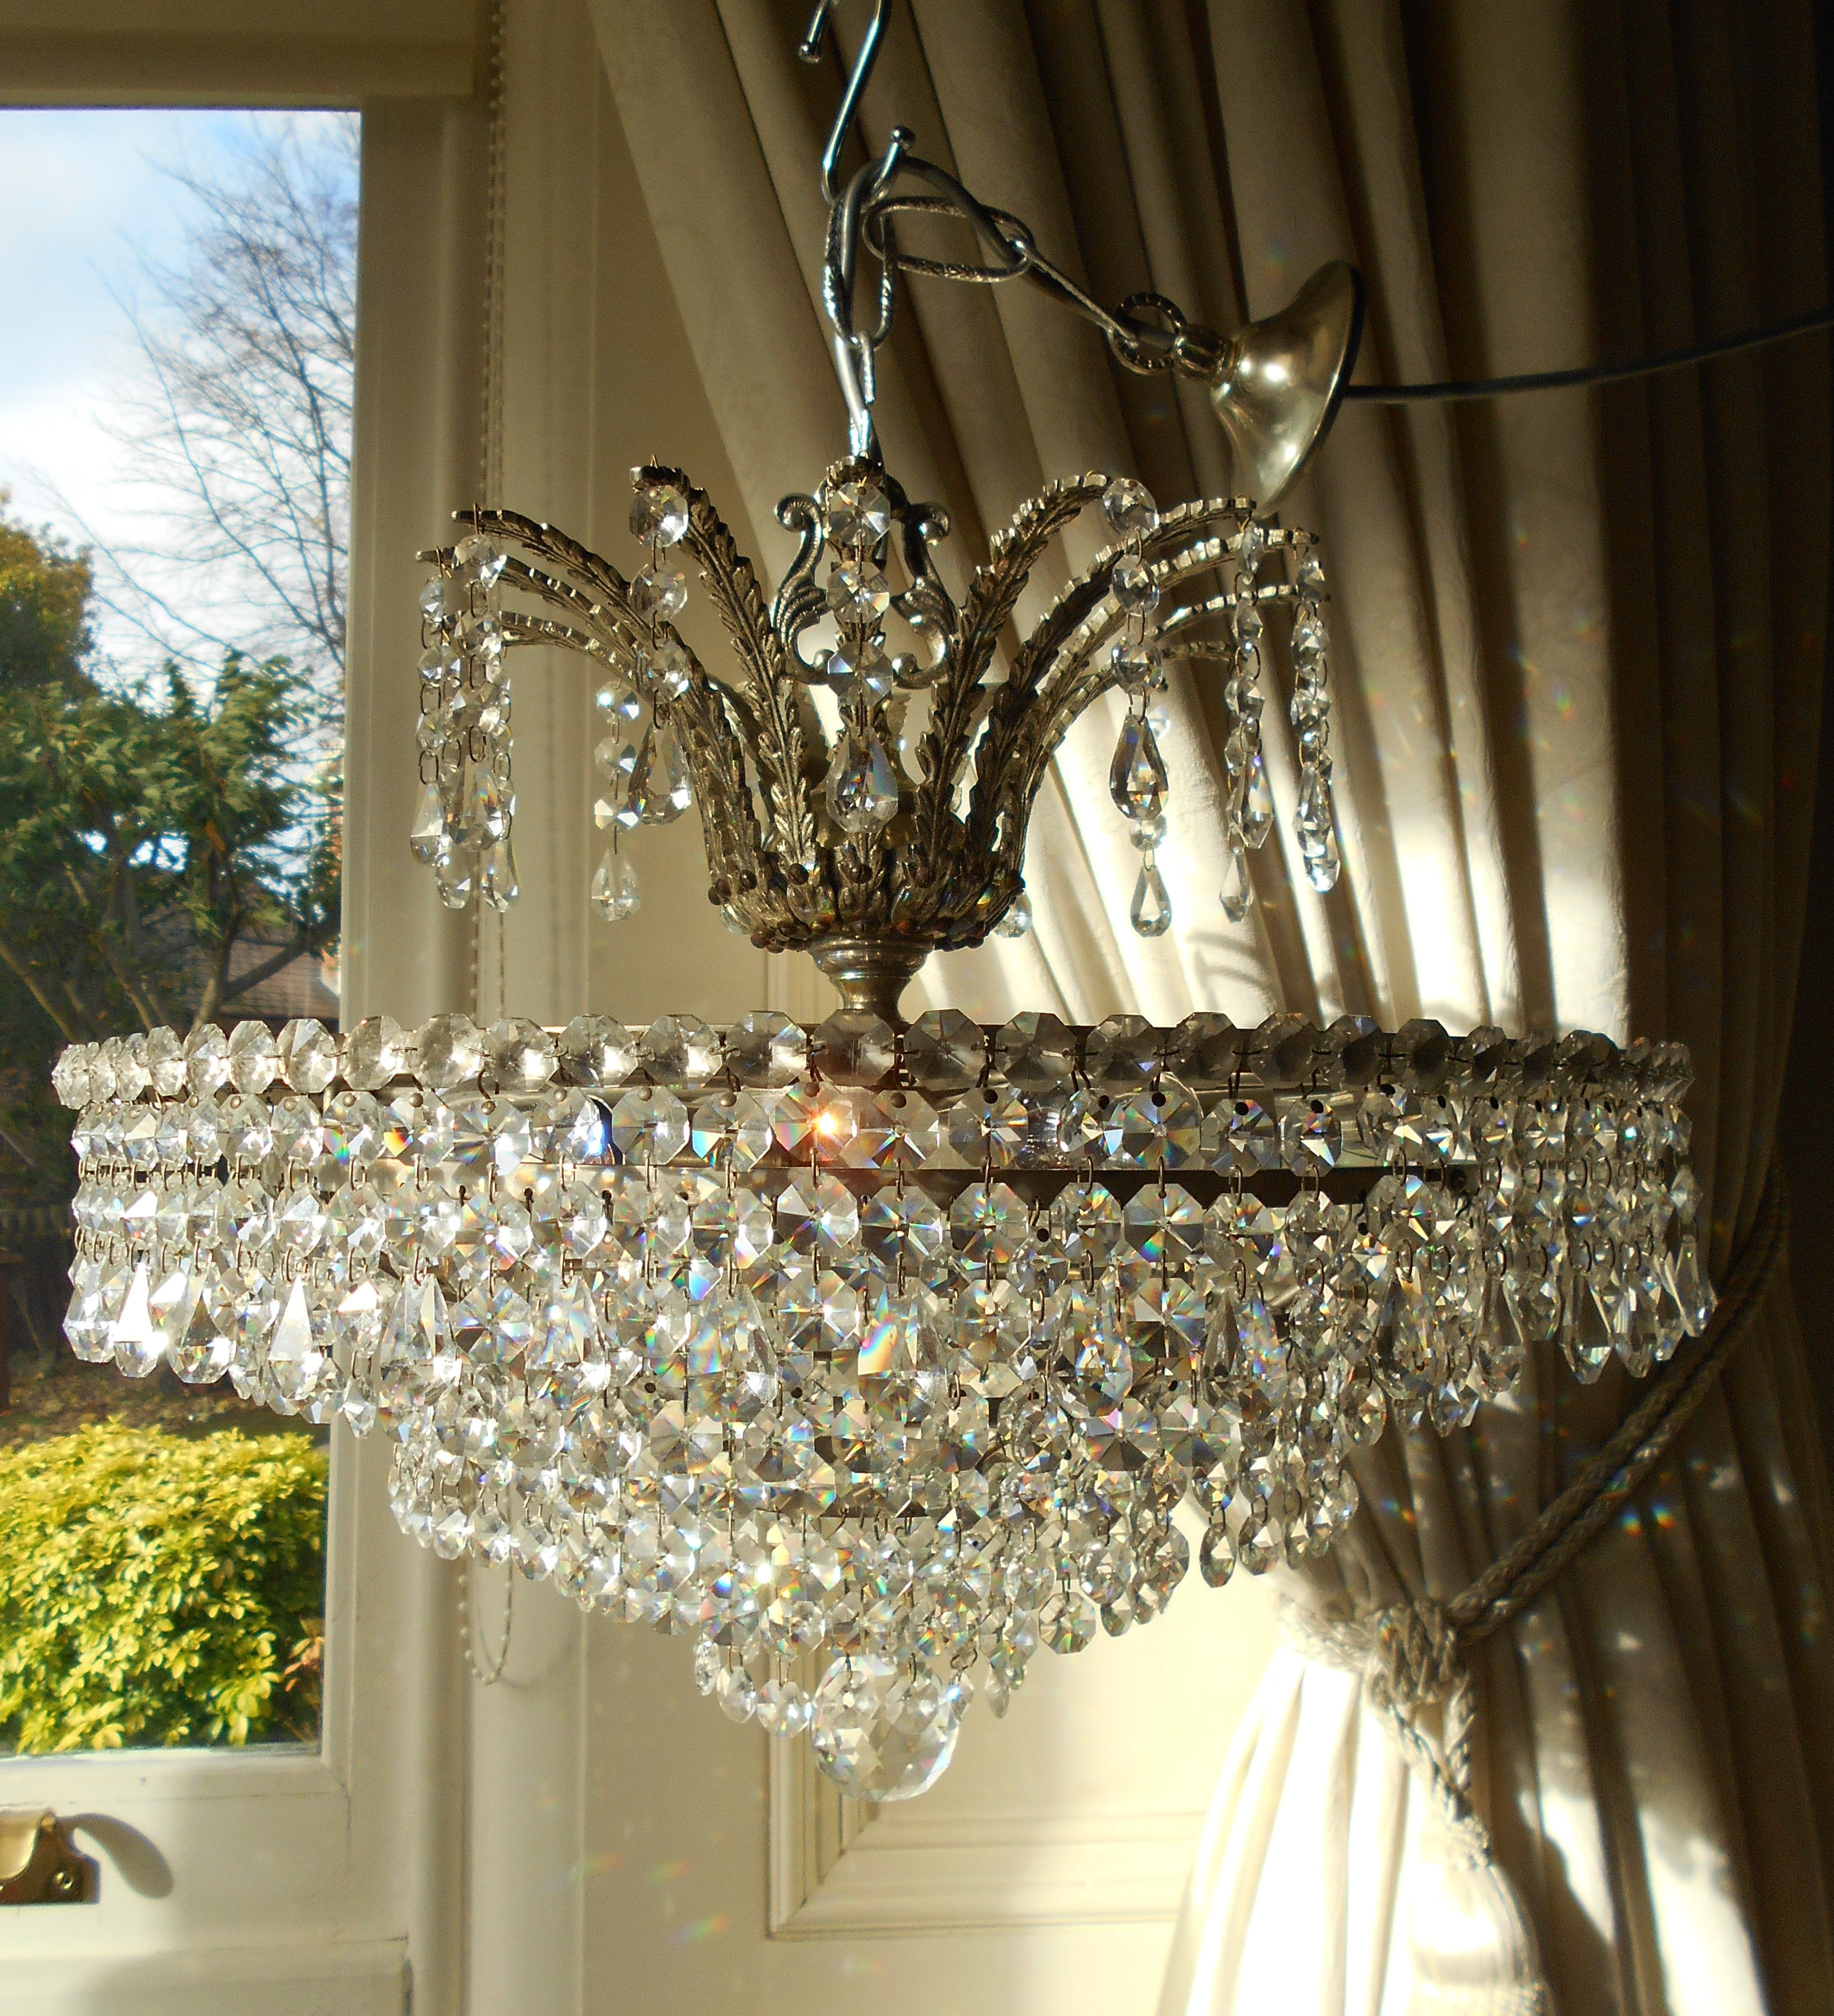 Vintage 6 tier lead crystal silver chandelier light me up vintage 6 tier lead crystal silver chandelier mozeypictures Gallery